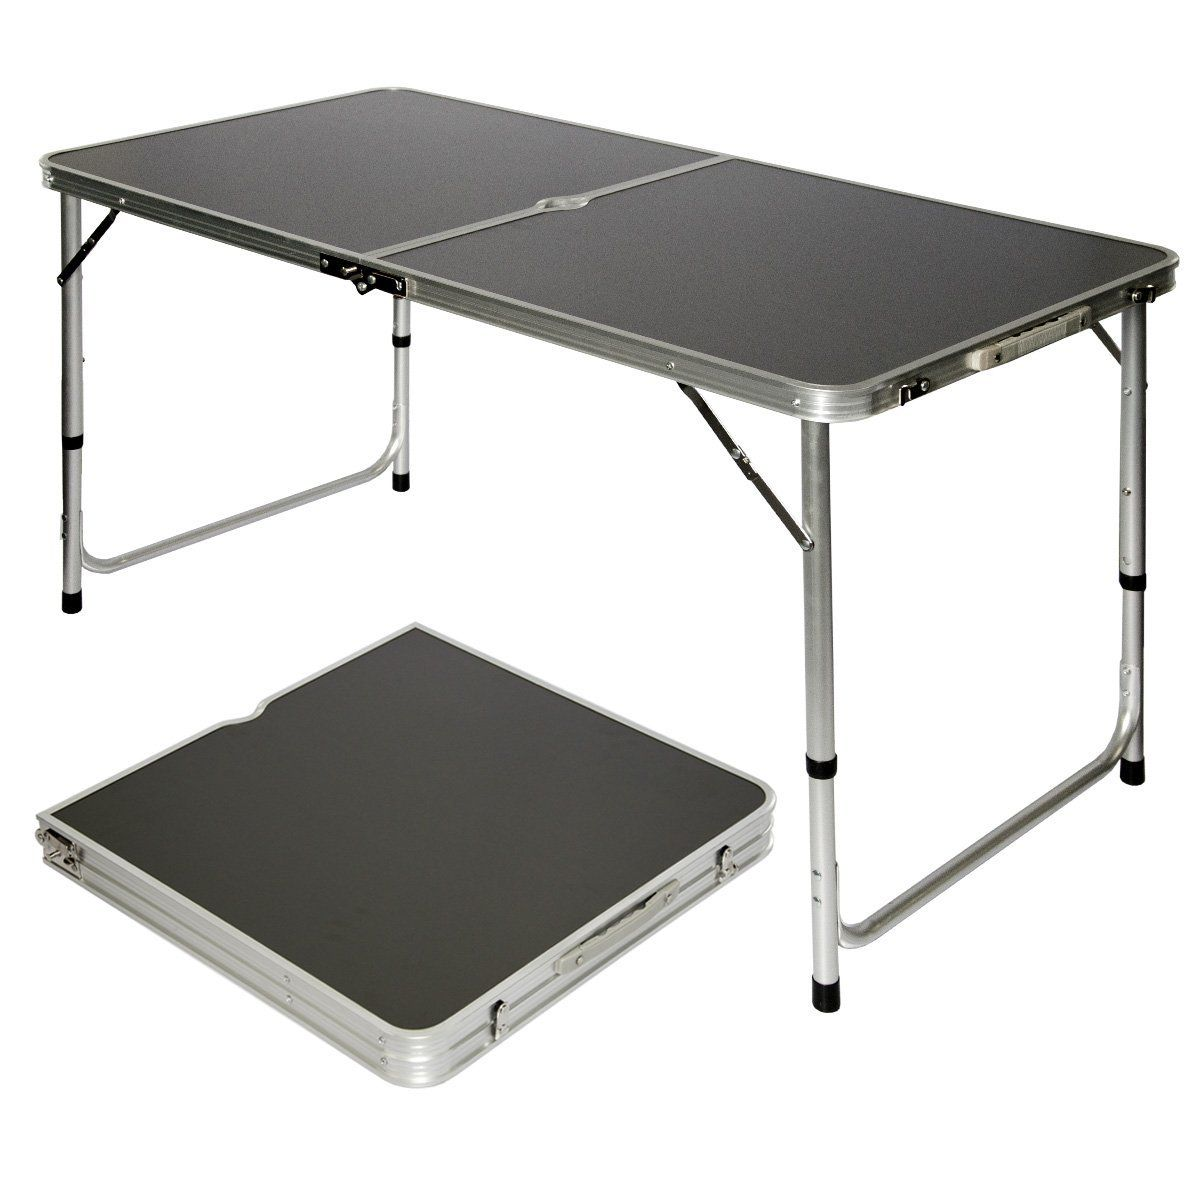 Amanka Table De Camping Pique Nique Pliable Reglable En Hauteur 120x60x70cm En Aluminium Pliant Format Mallett Table Camping Table De Pique Nique Table Pliable